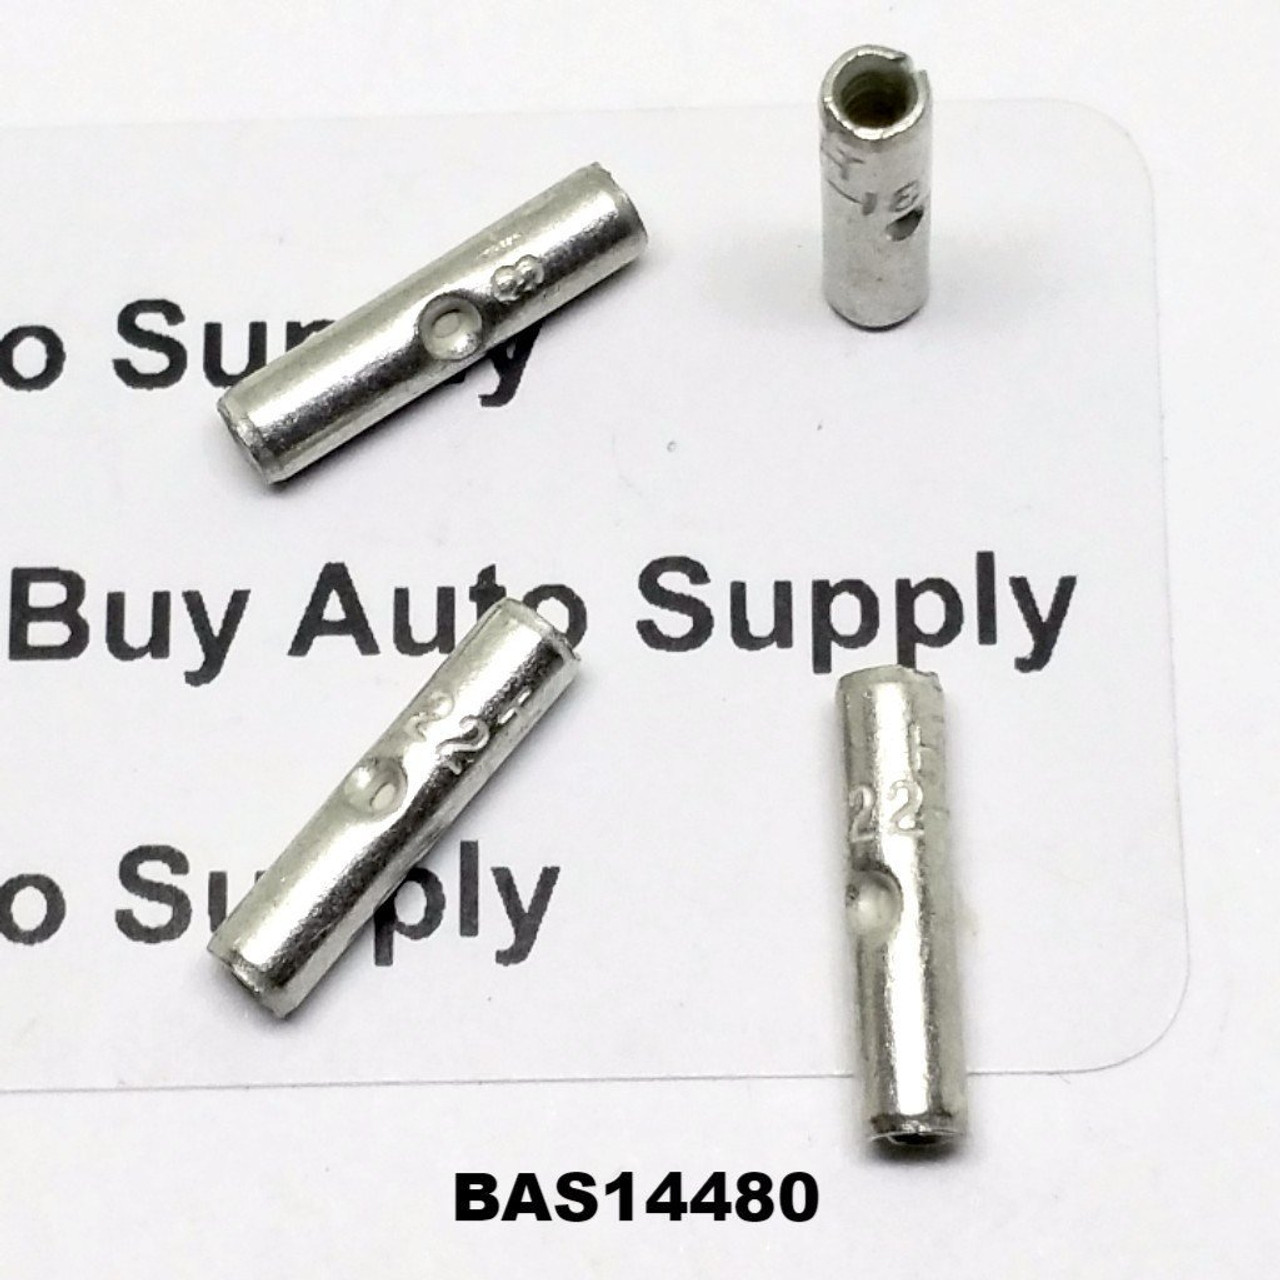 22-18 Non-Insulated Butt Connector - Made in USA- BAS14480